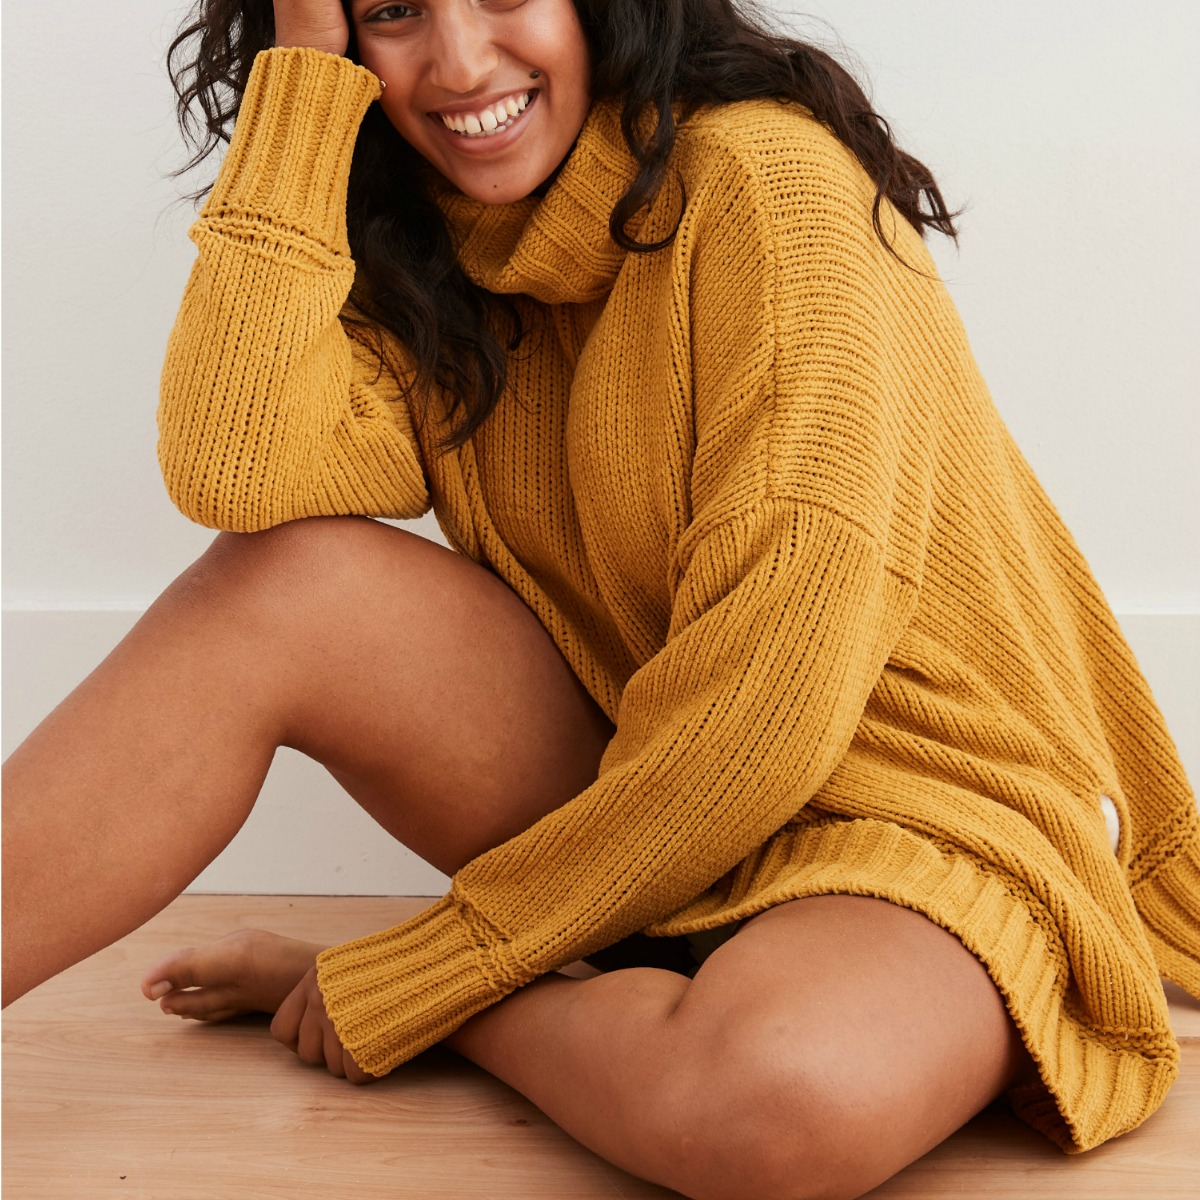 Woman wearing mustard colored chenille sweater